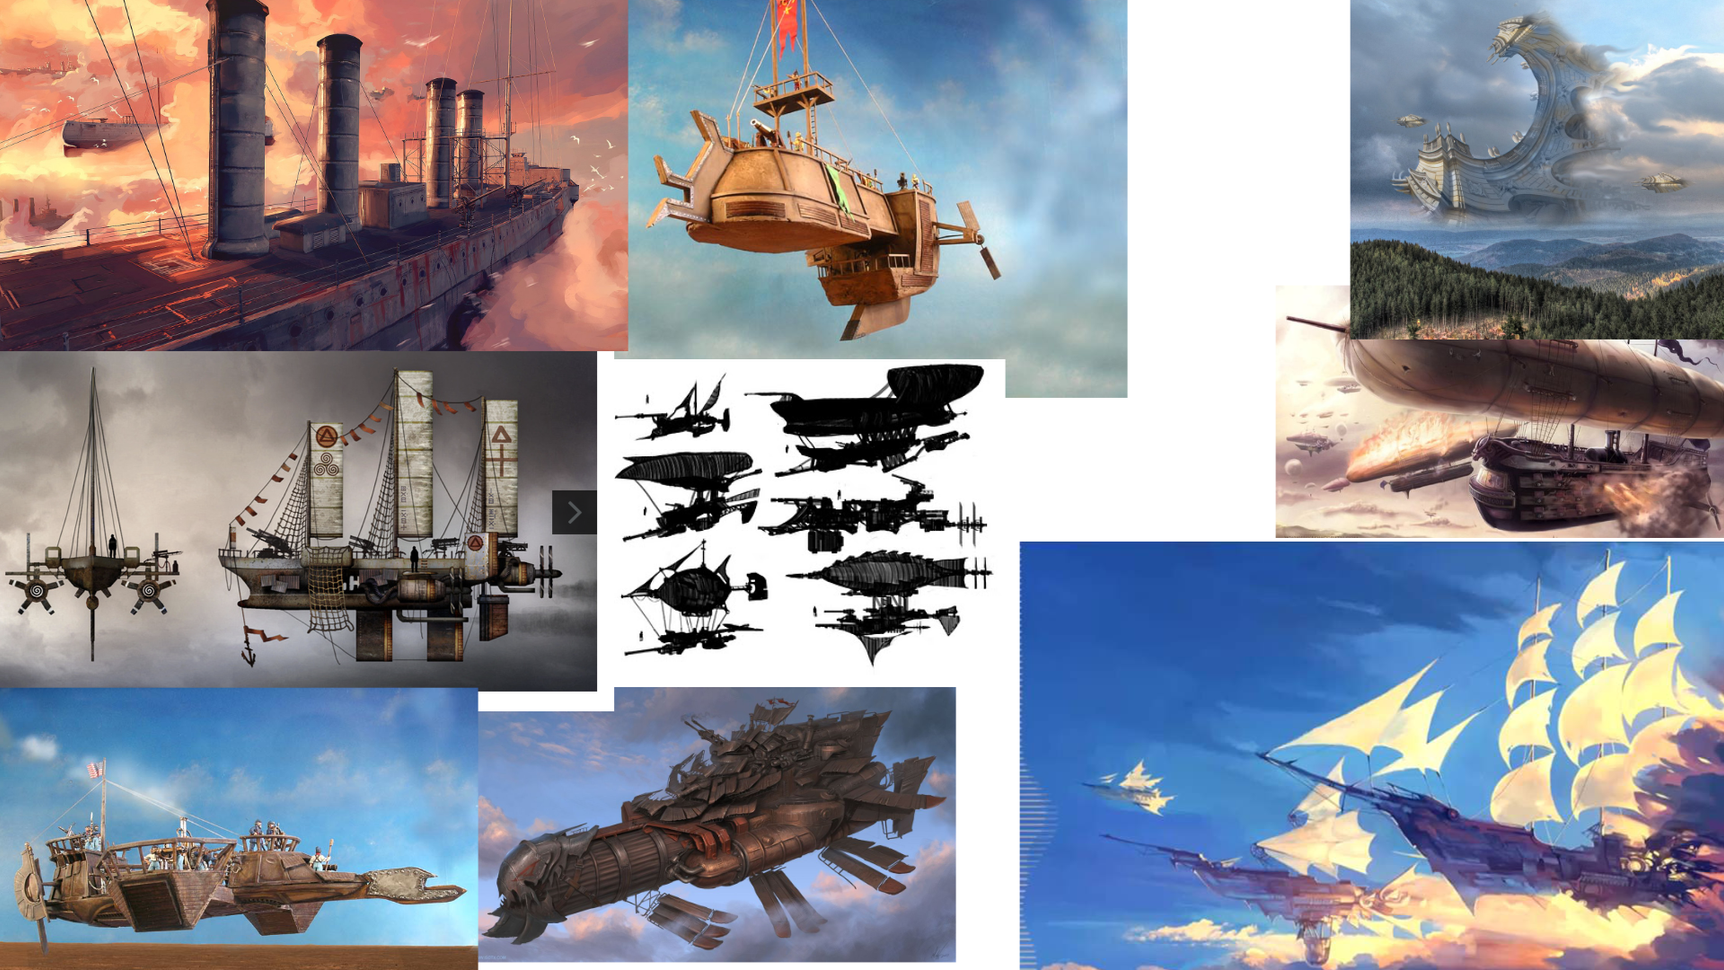 Ship reference 1